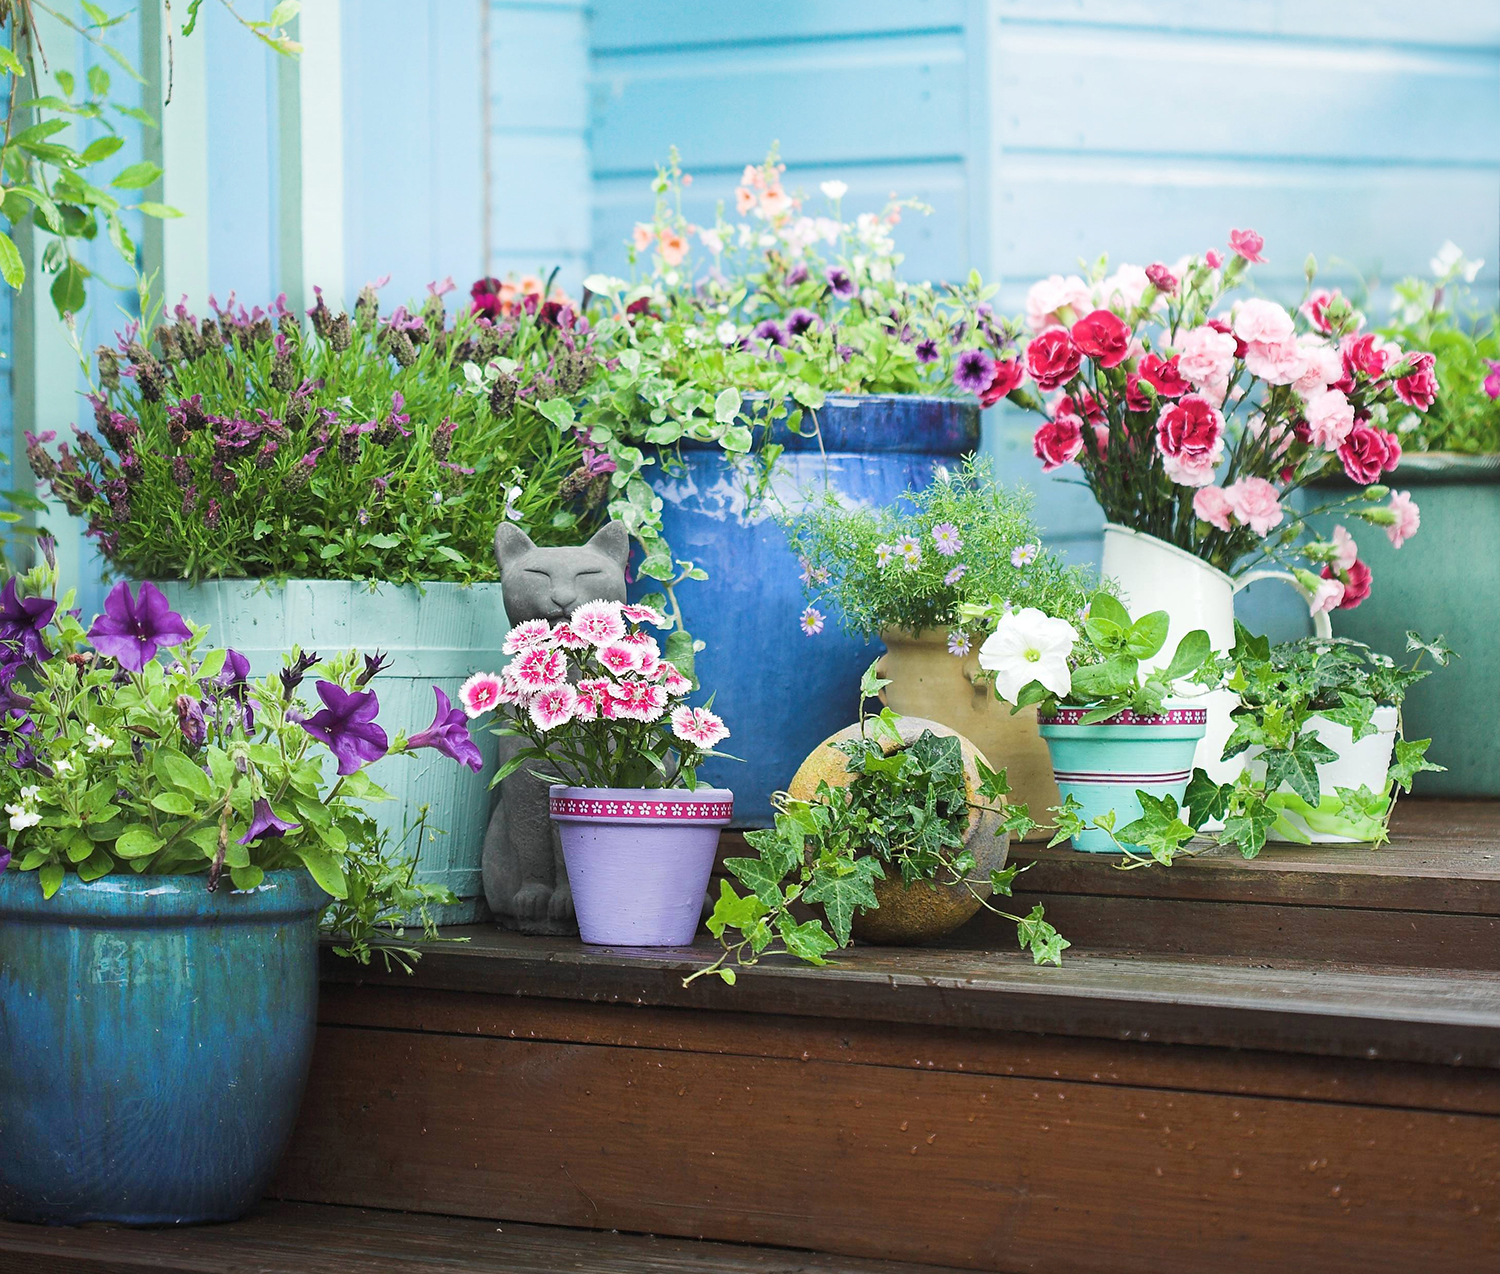 Pot up bright flowers for instant colour. Image: Valda / Shutterstock